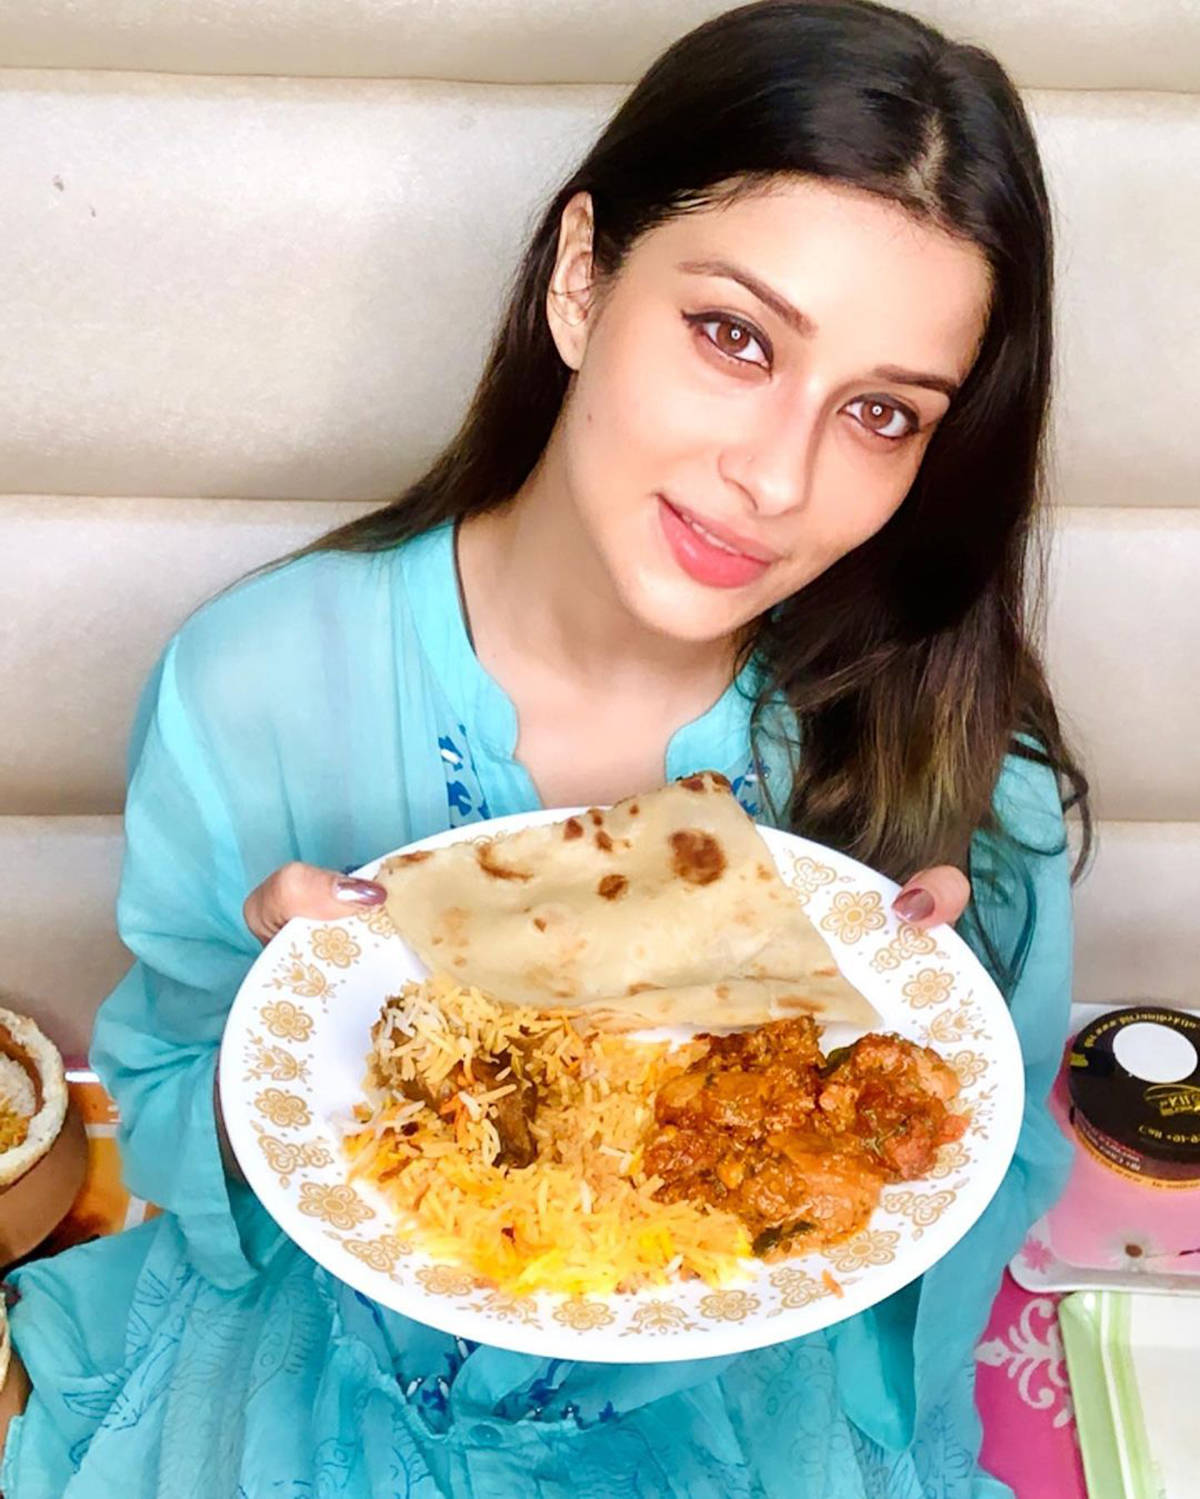 Celebrities who are big foodies